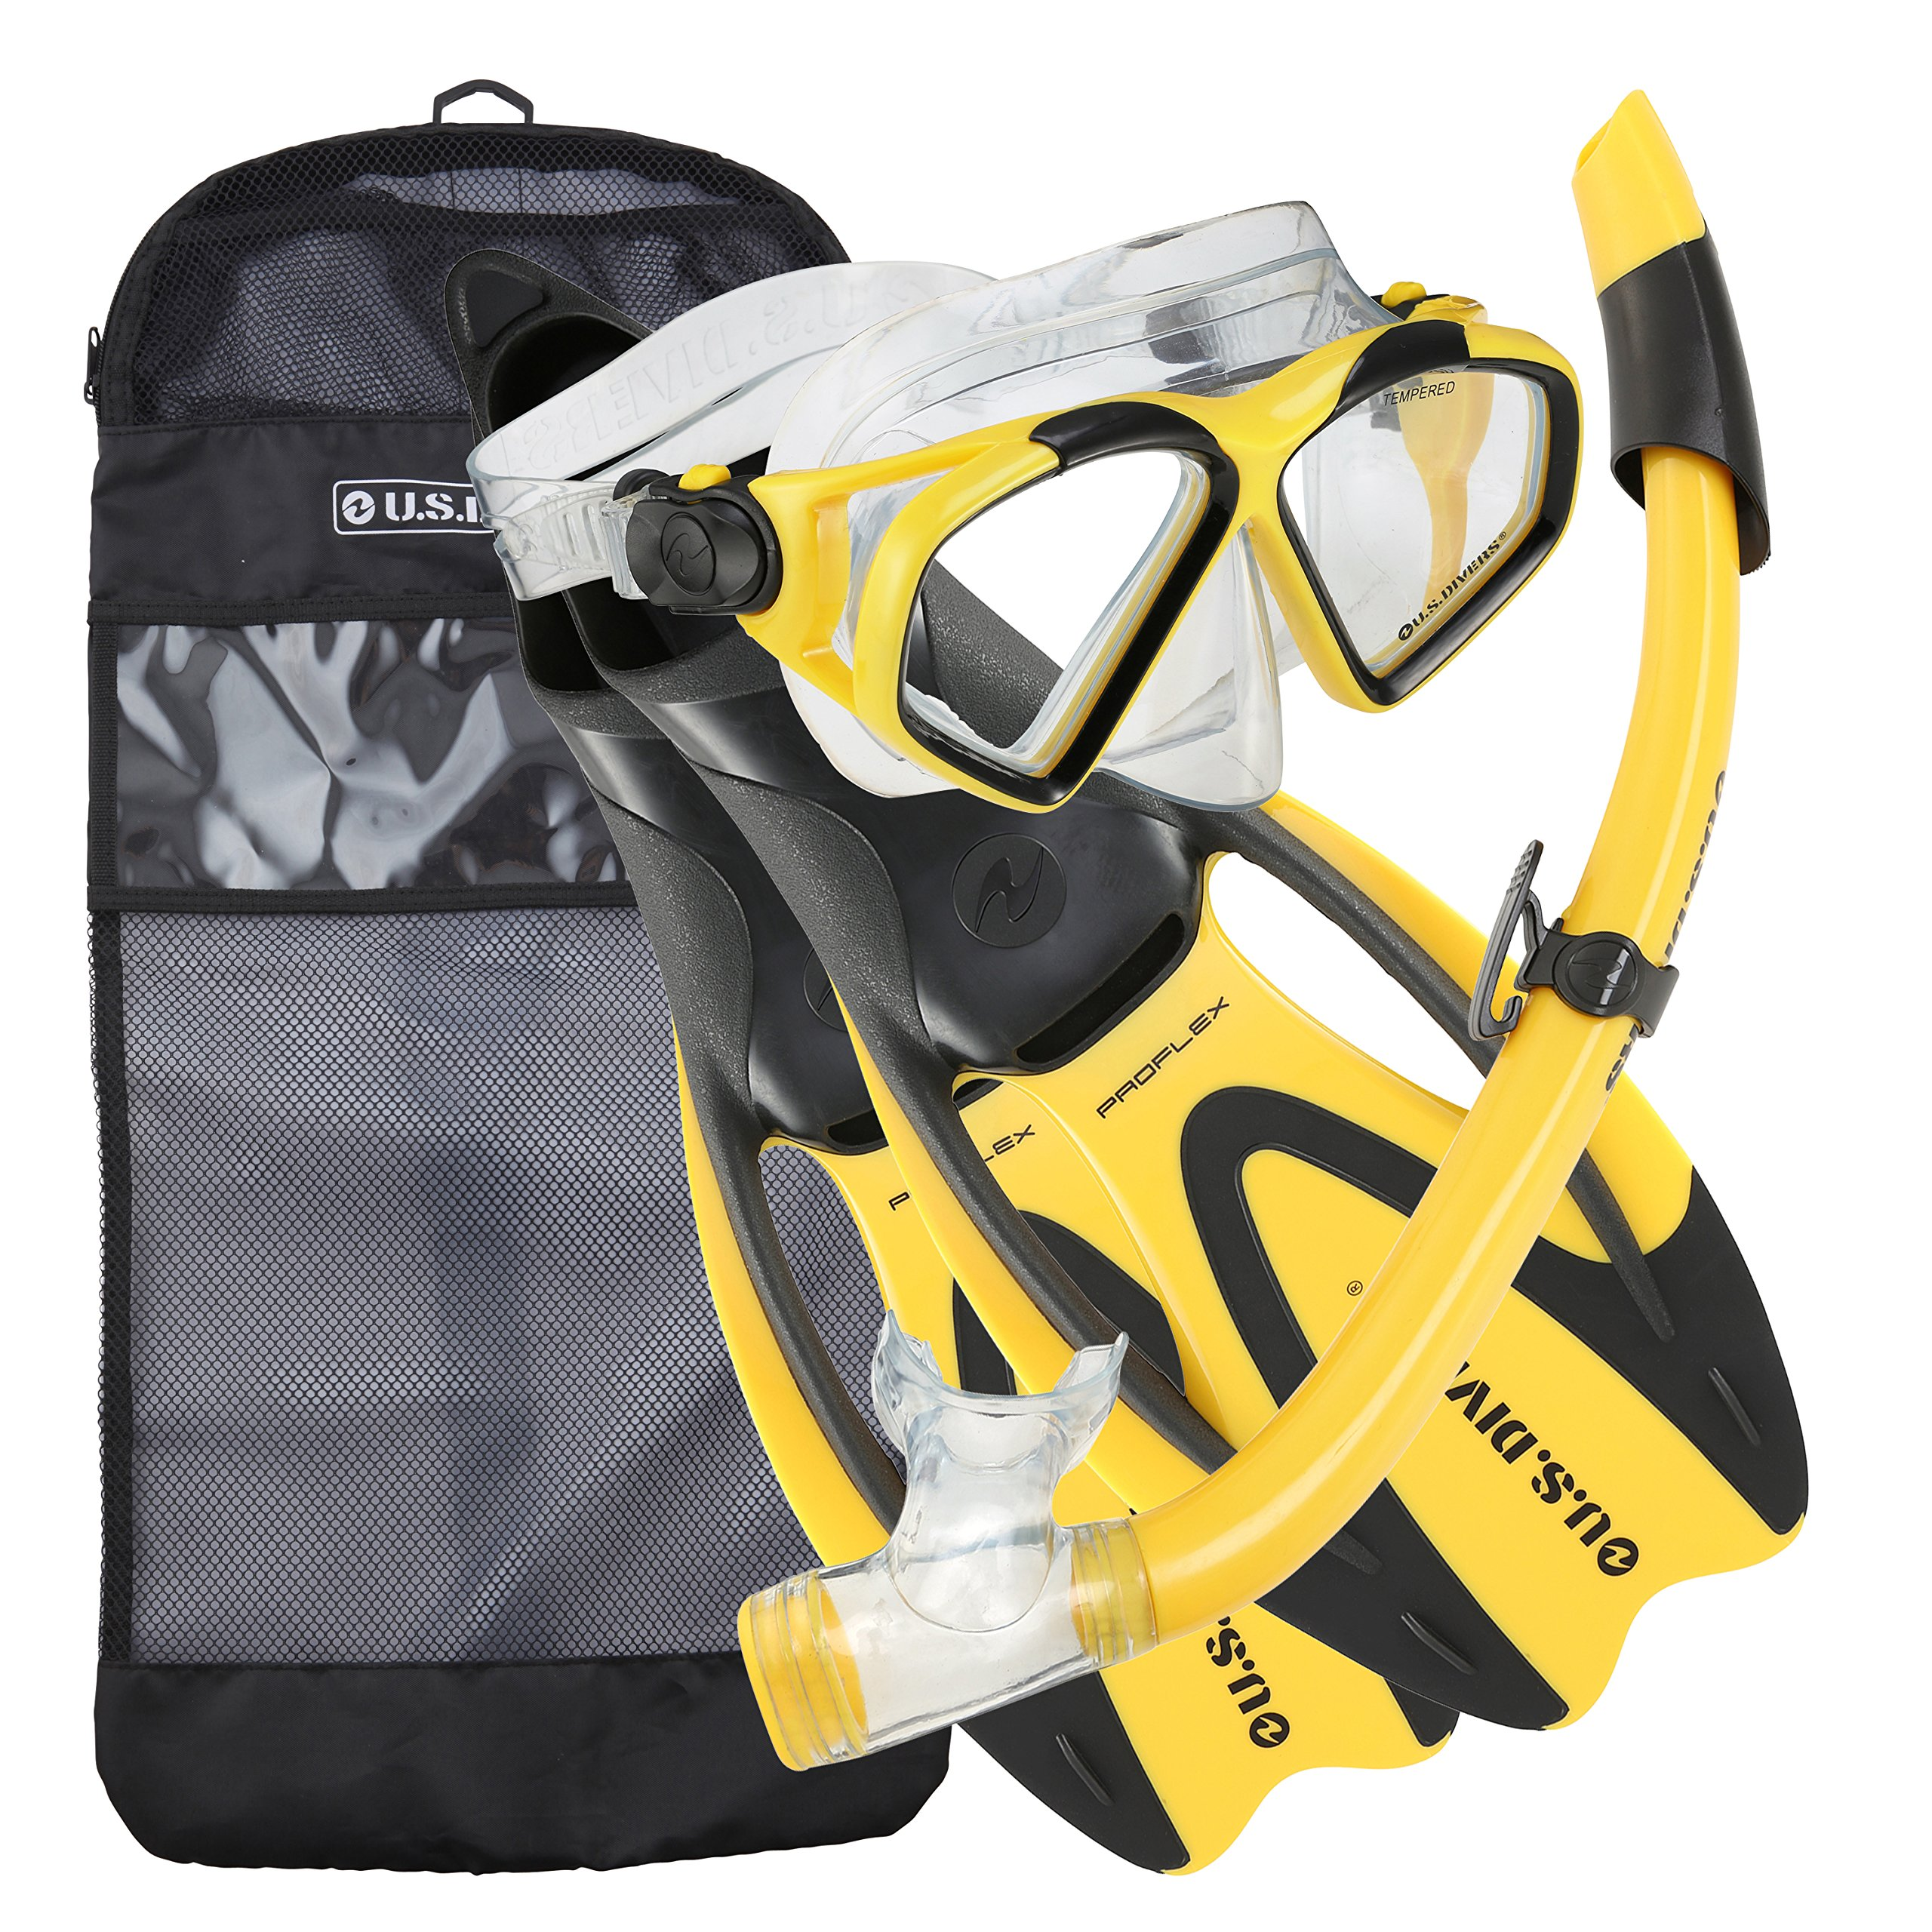 U.S. Divers Adult Cozumel Mask/Seabreeze II Snorkel/Proflex Fins/Gearbag, Medium, Yellow by U.S. Divers